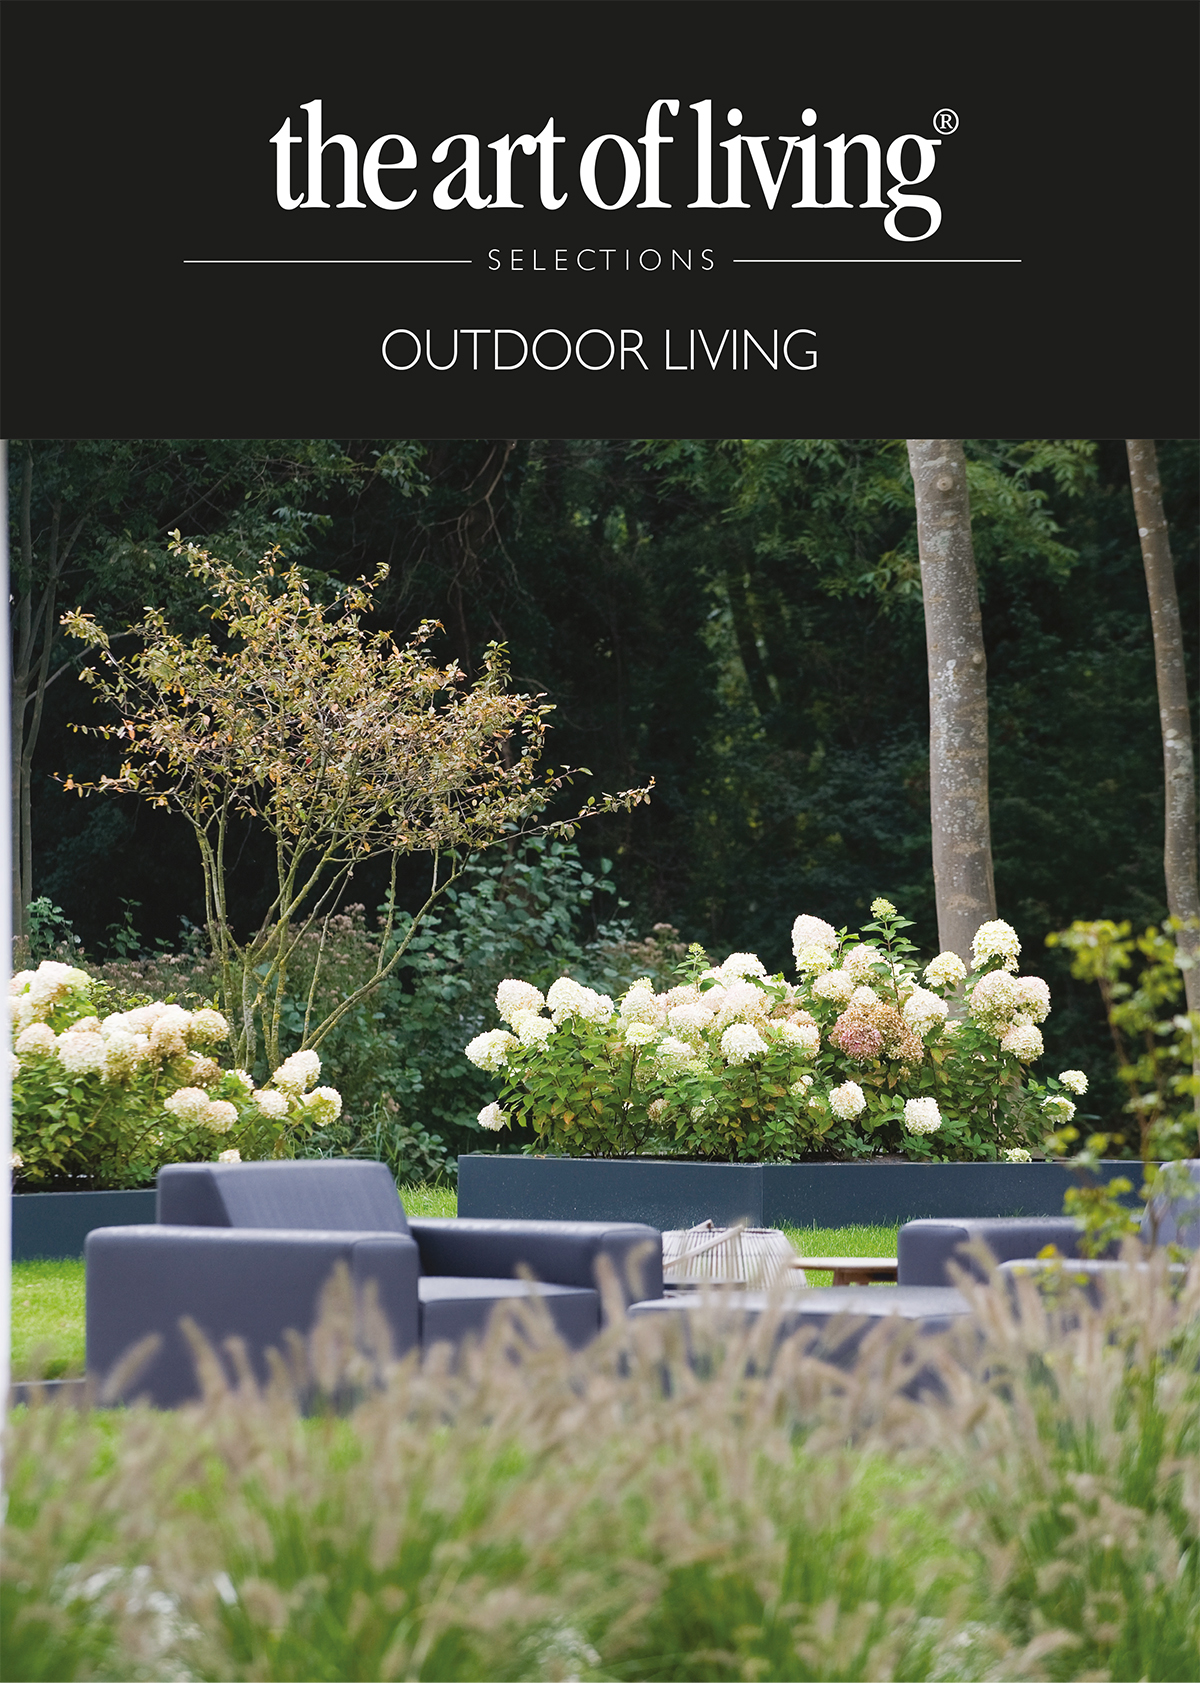 The Art of Living Magazine, outdoor living editie, 2018